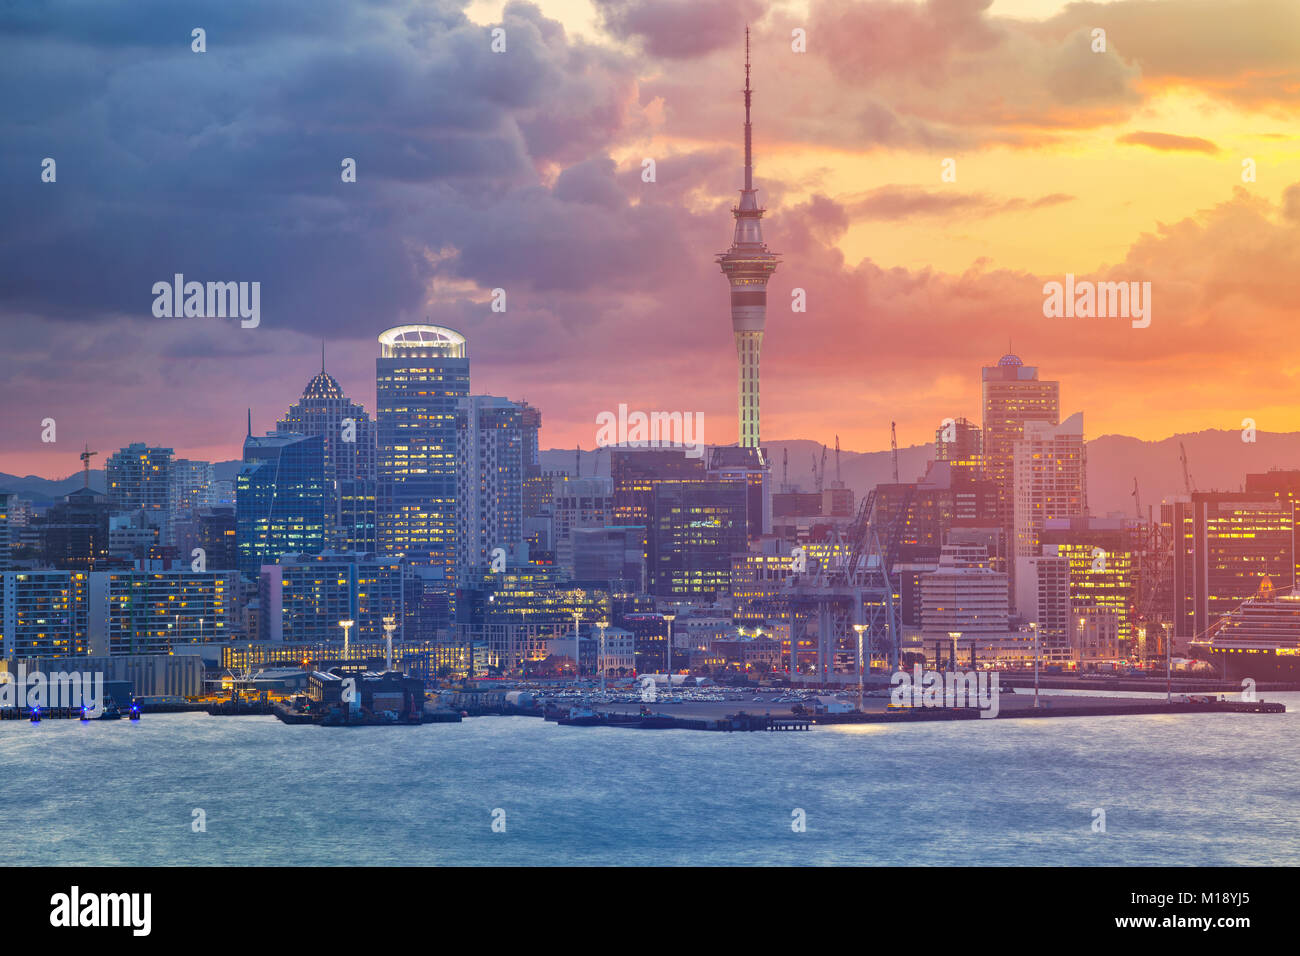 Auckland. Image de ville Auckland skyline, New Zealand pendant le coucher du soleil. Photo Stock